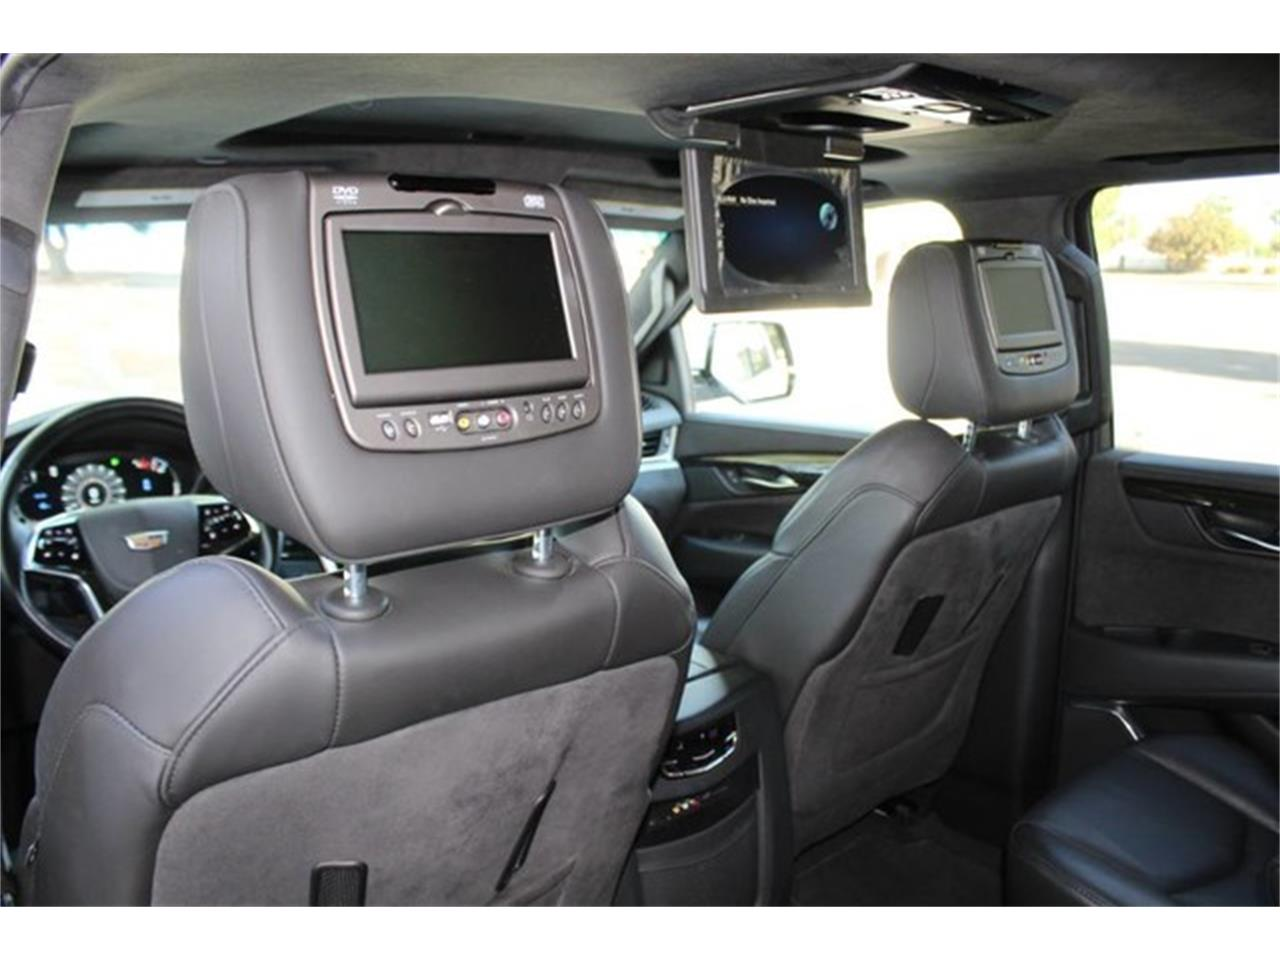 Large Picture of 2016 Cadillac Escalade located in Anaheim California - $67,888.00 - MO5S